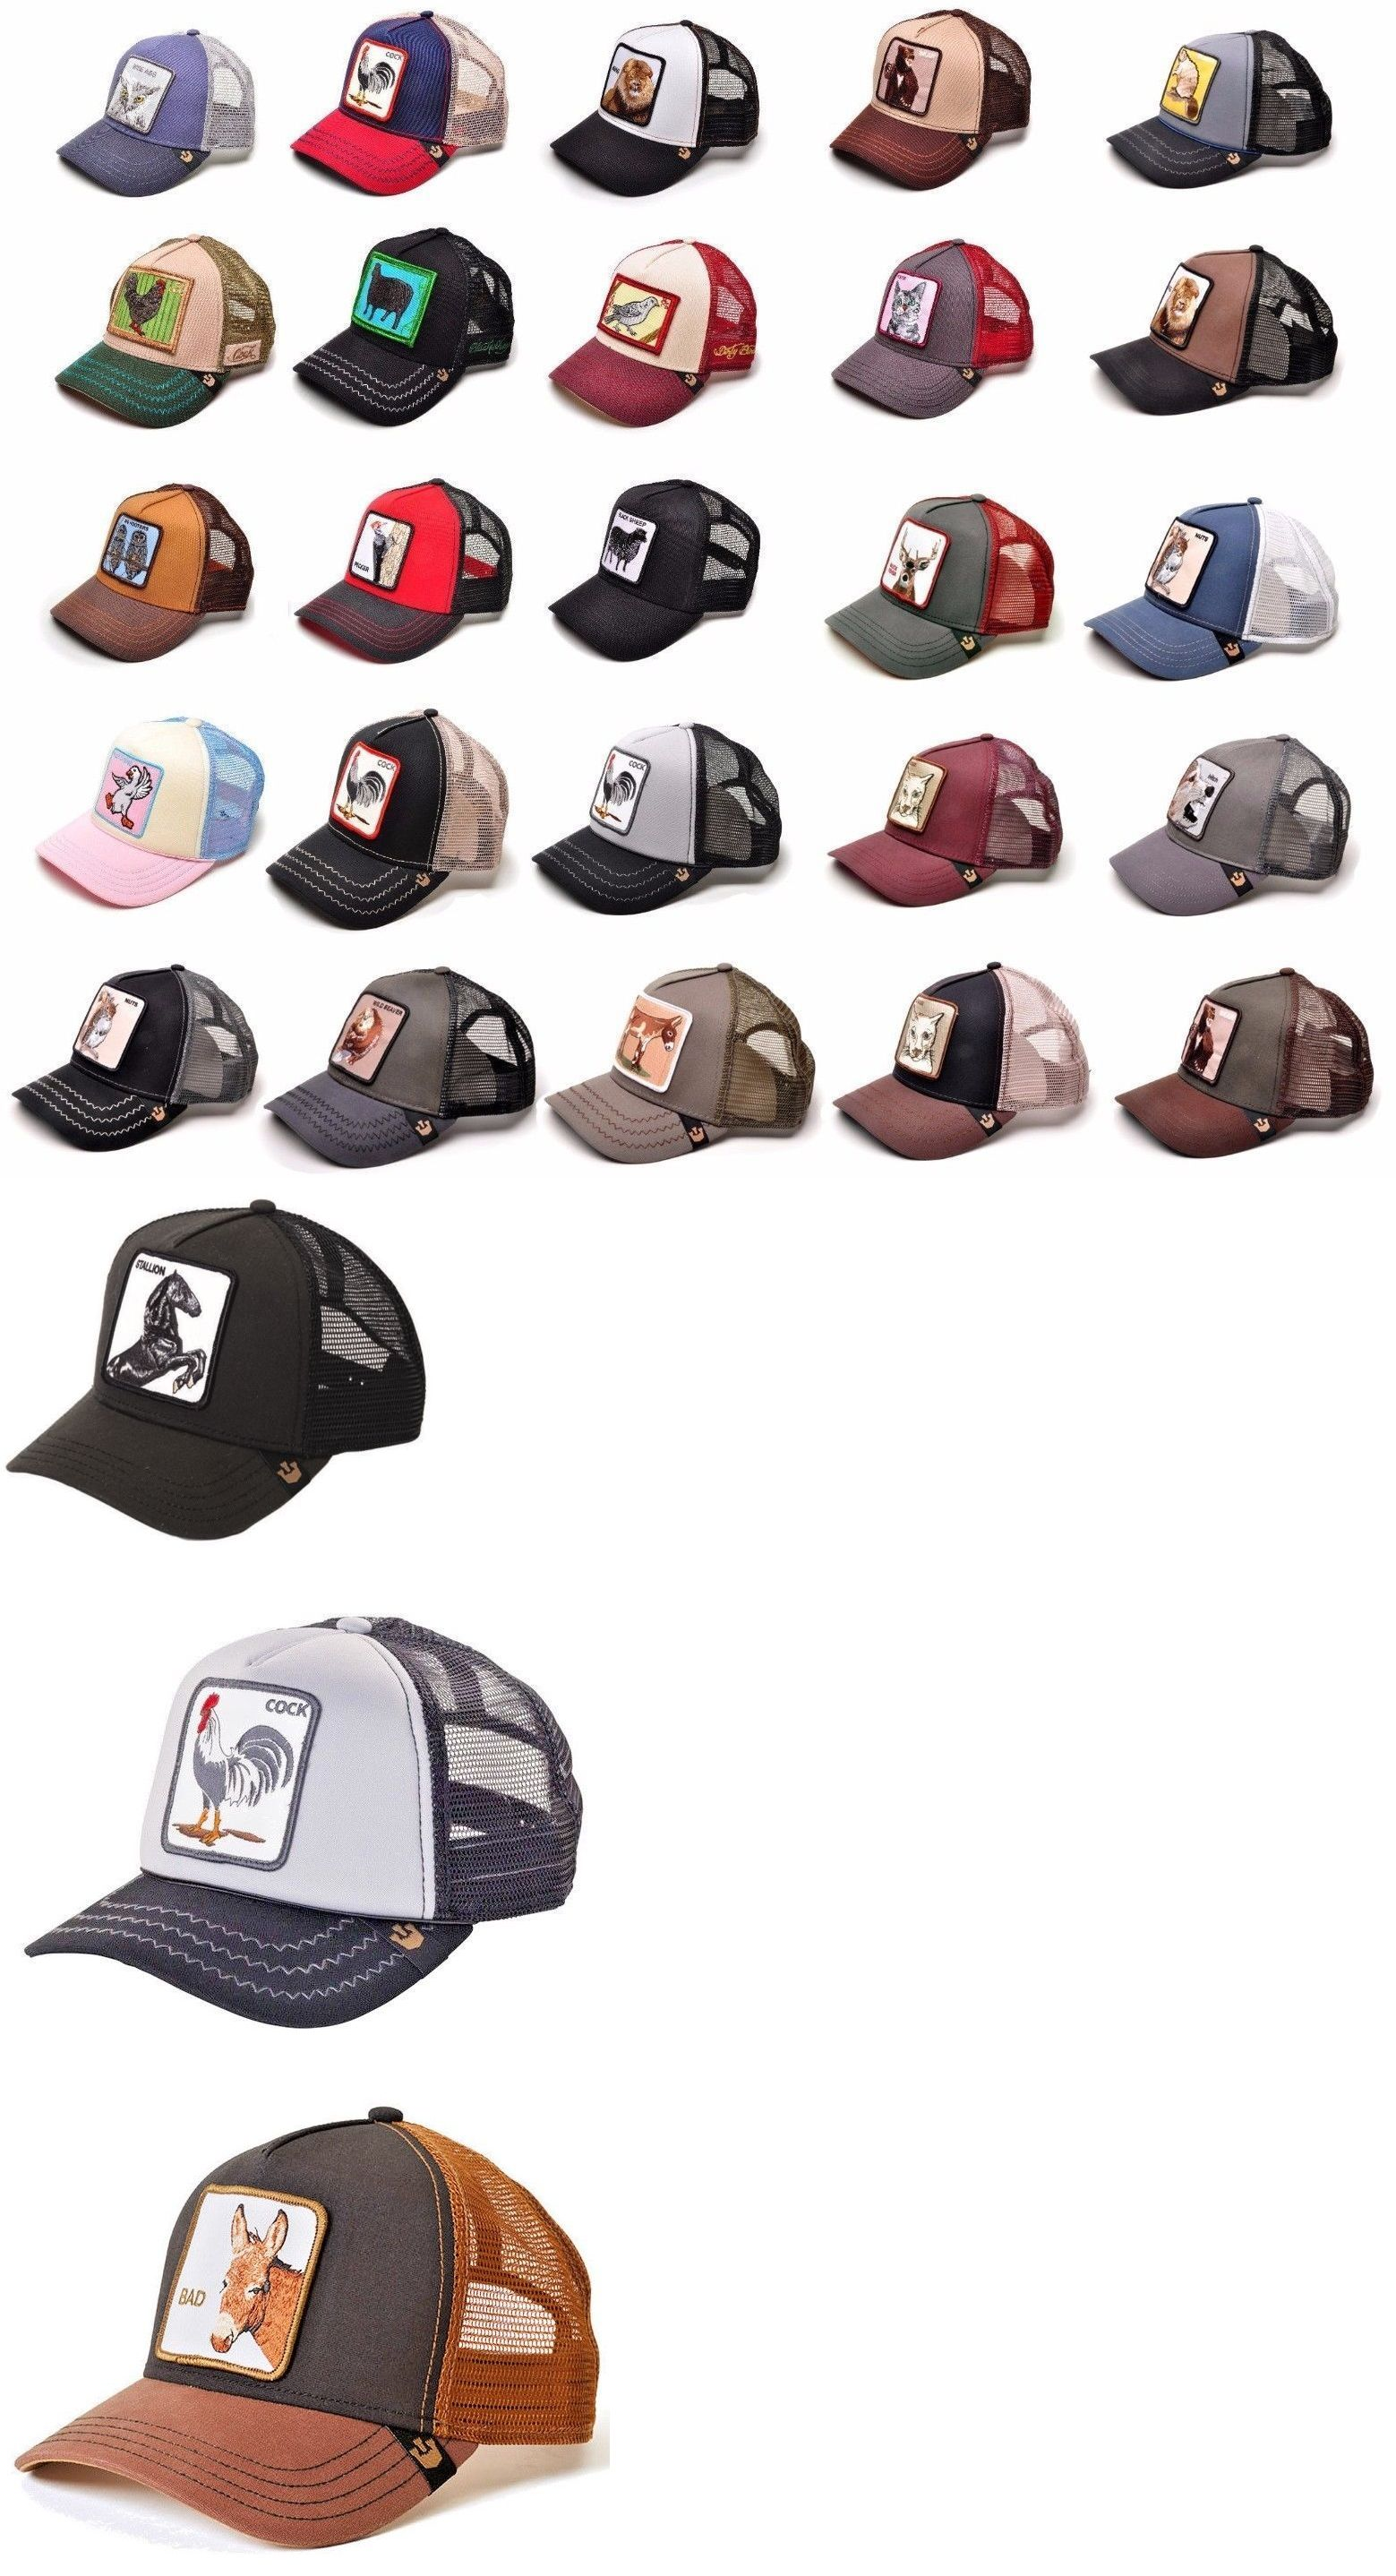 7b035b845f7b7 Hats 52365  Goorin Bros Animal Farm Snapback Trucker Hat Cap Rooster  Stallion Pecker Lion -  BUY IT NOW ONLY   44.99 on  eBay  goorin  animal   snapback ...